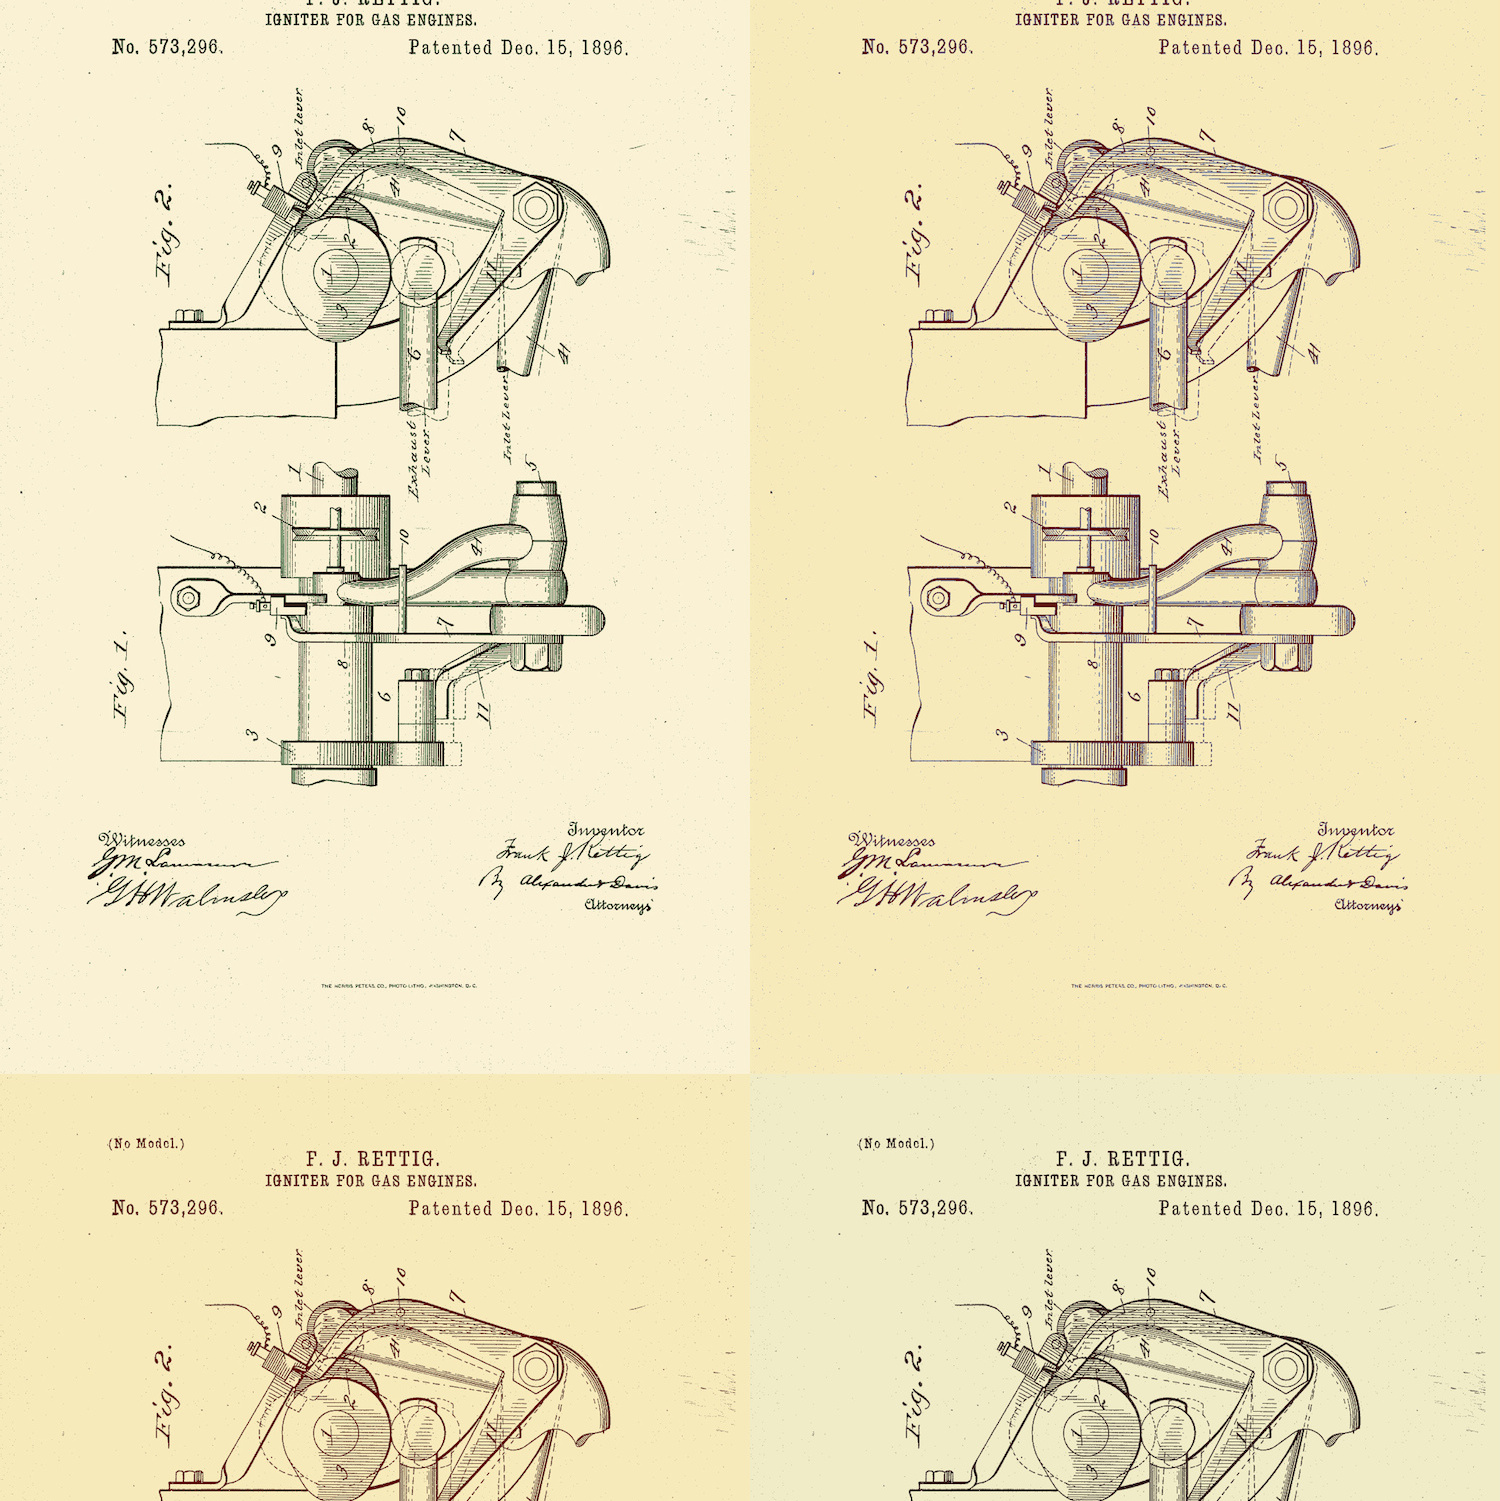 F. J. RETTIG. IGNITER FOR GAS ENGINES. No. 573,296 Patented Dec. 15,1896.  UNITED STATES PATENT  FRANK RETTIG, OF NORTH MANCHESTER,INDIANA. ASSIGNOR TO THE BUCKEYE MANUFACTURING COMPANY, OF ANDERSON,INDIANA.  IGNITER FOR GAS-ENGINES.  SPECIFICATION forming part of Letters Patent No. 573,296, dated December 15, 1896.  Application filed March 5, 1896- Serial No. 581,964. (No model.)